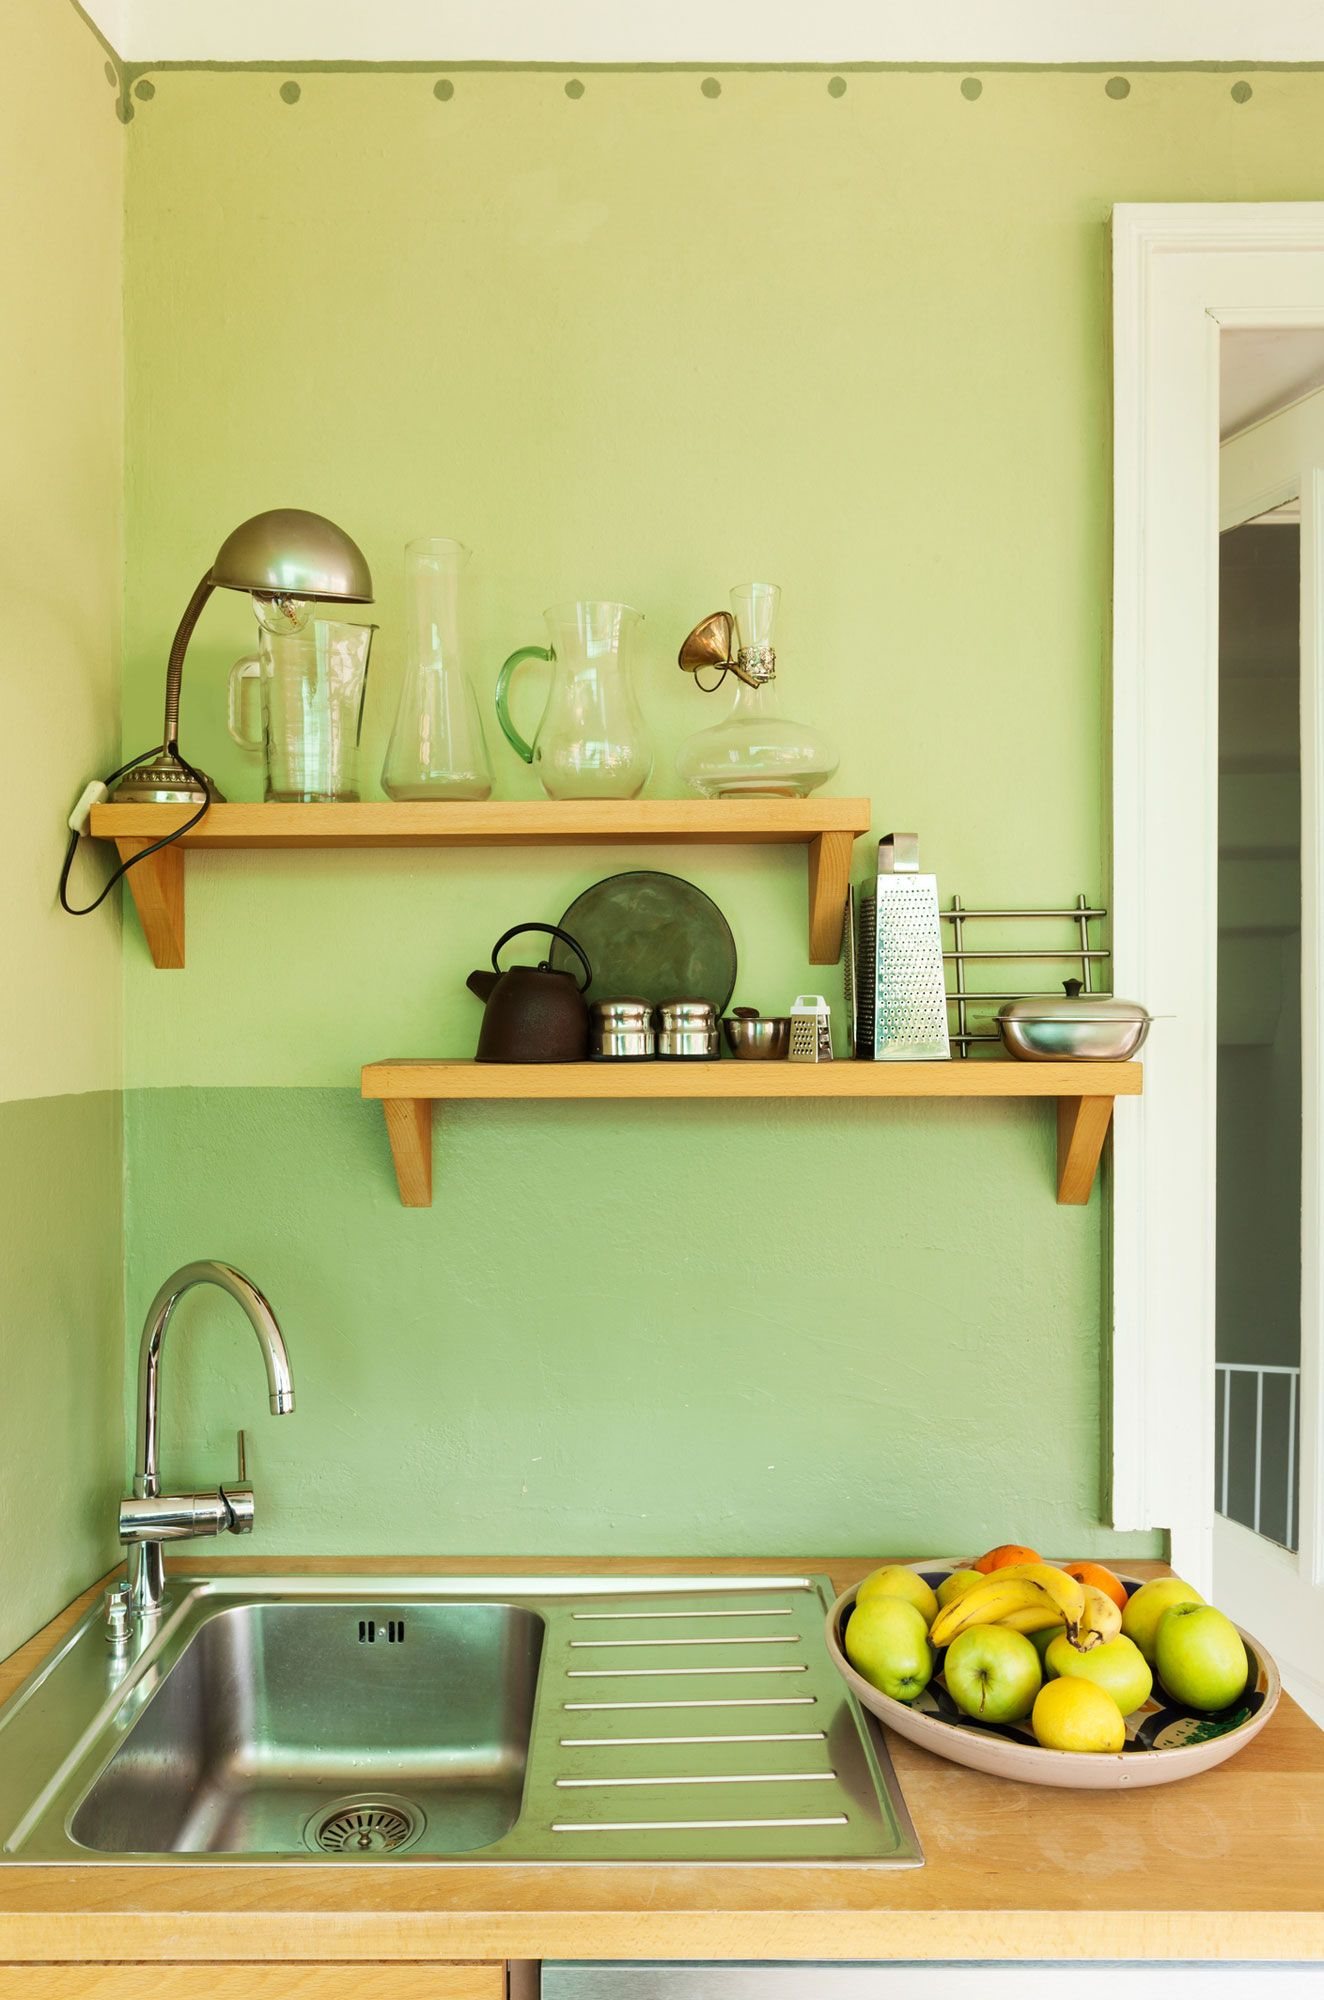 Decorar una cocina en color verde hogarmania - Como insonorizar una pared ...